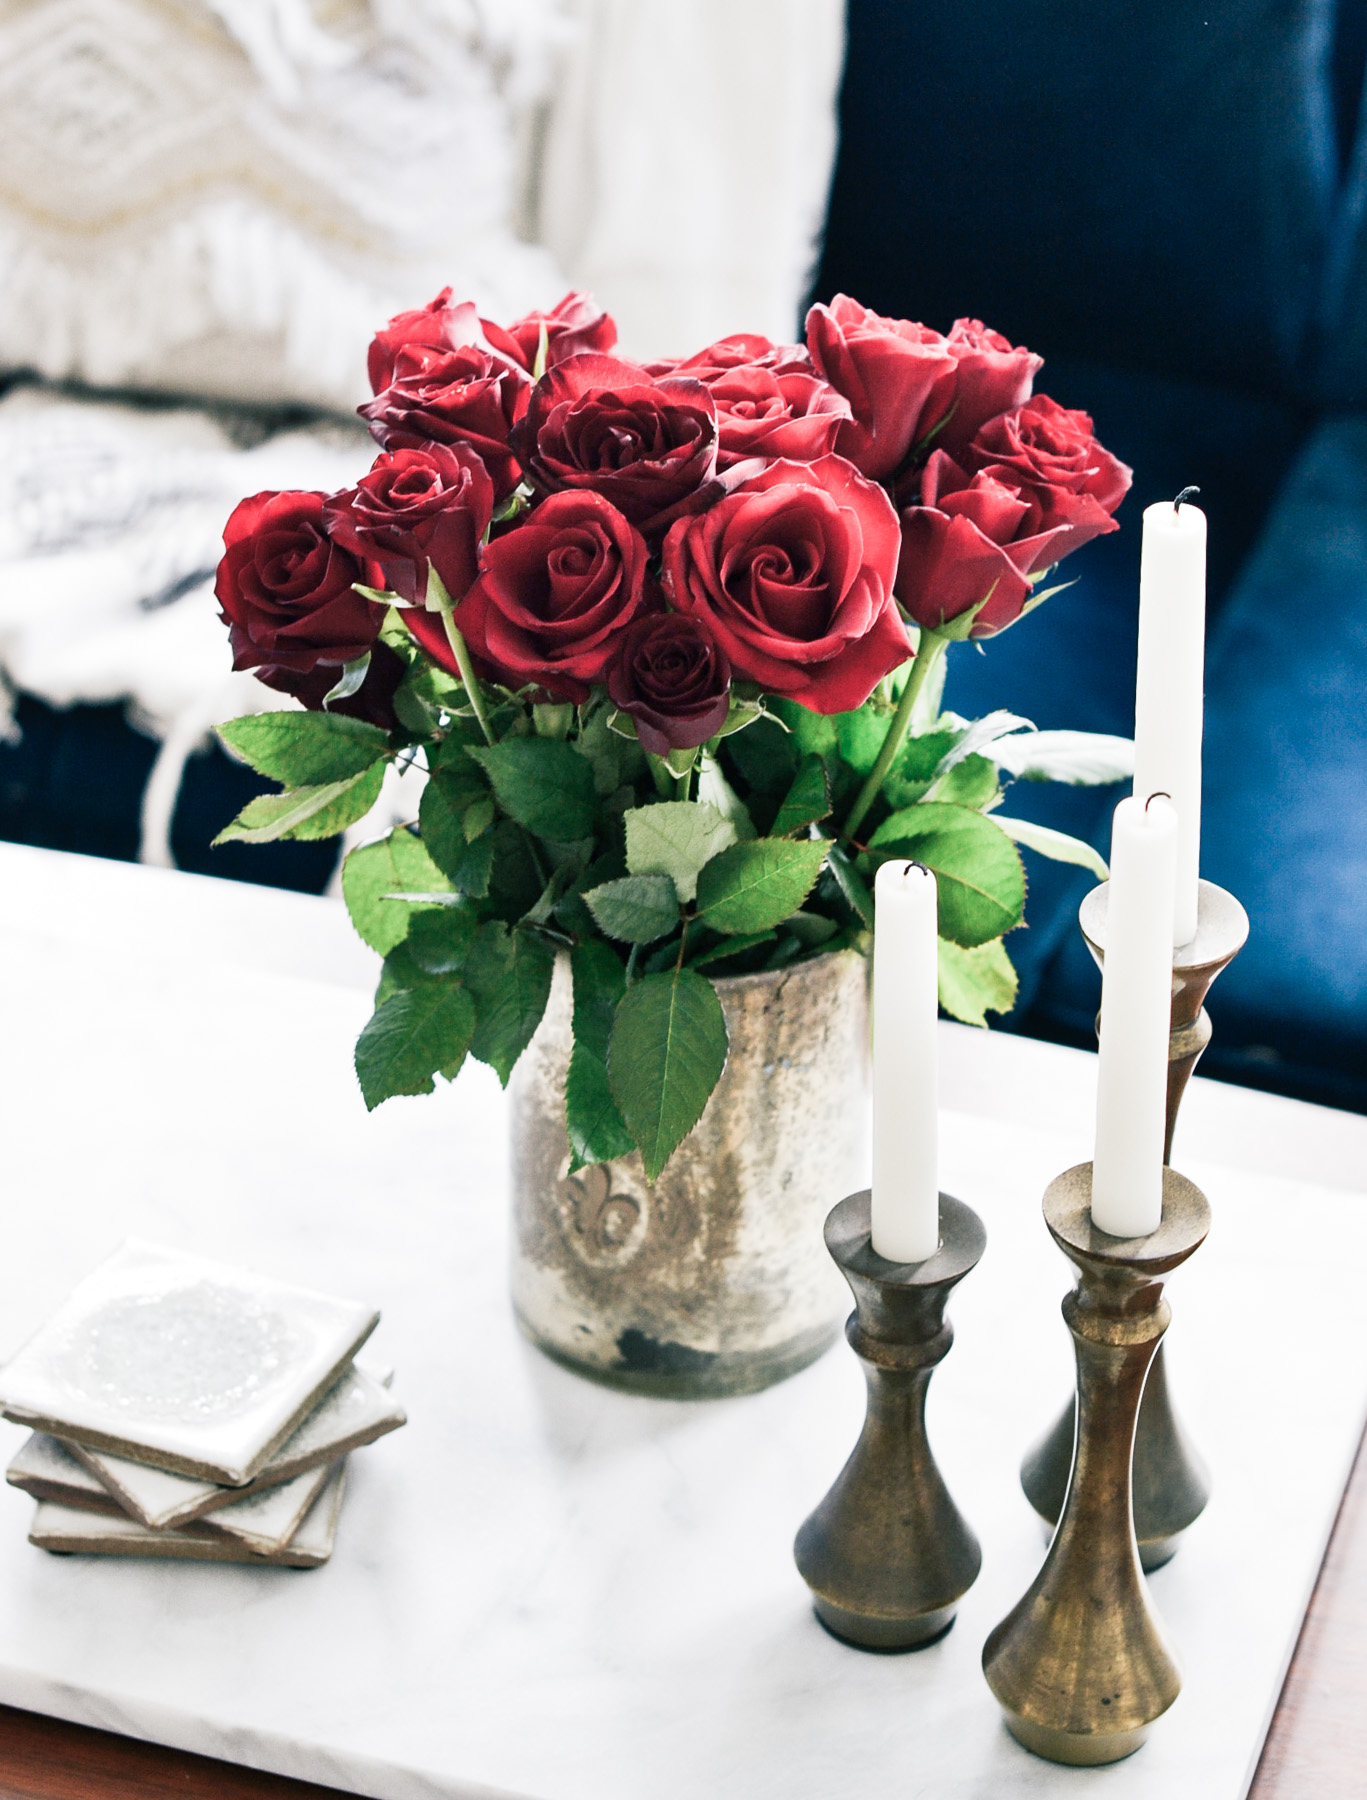 valentine's day gift ideas red roses